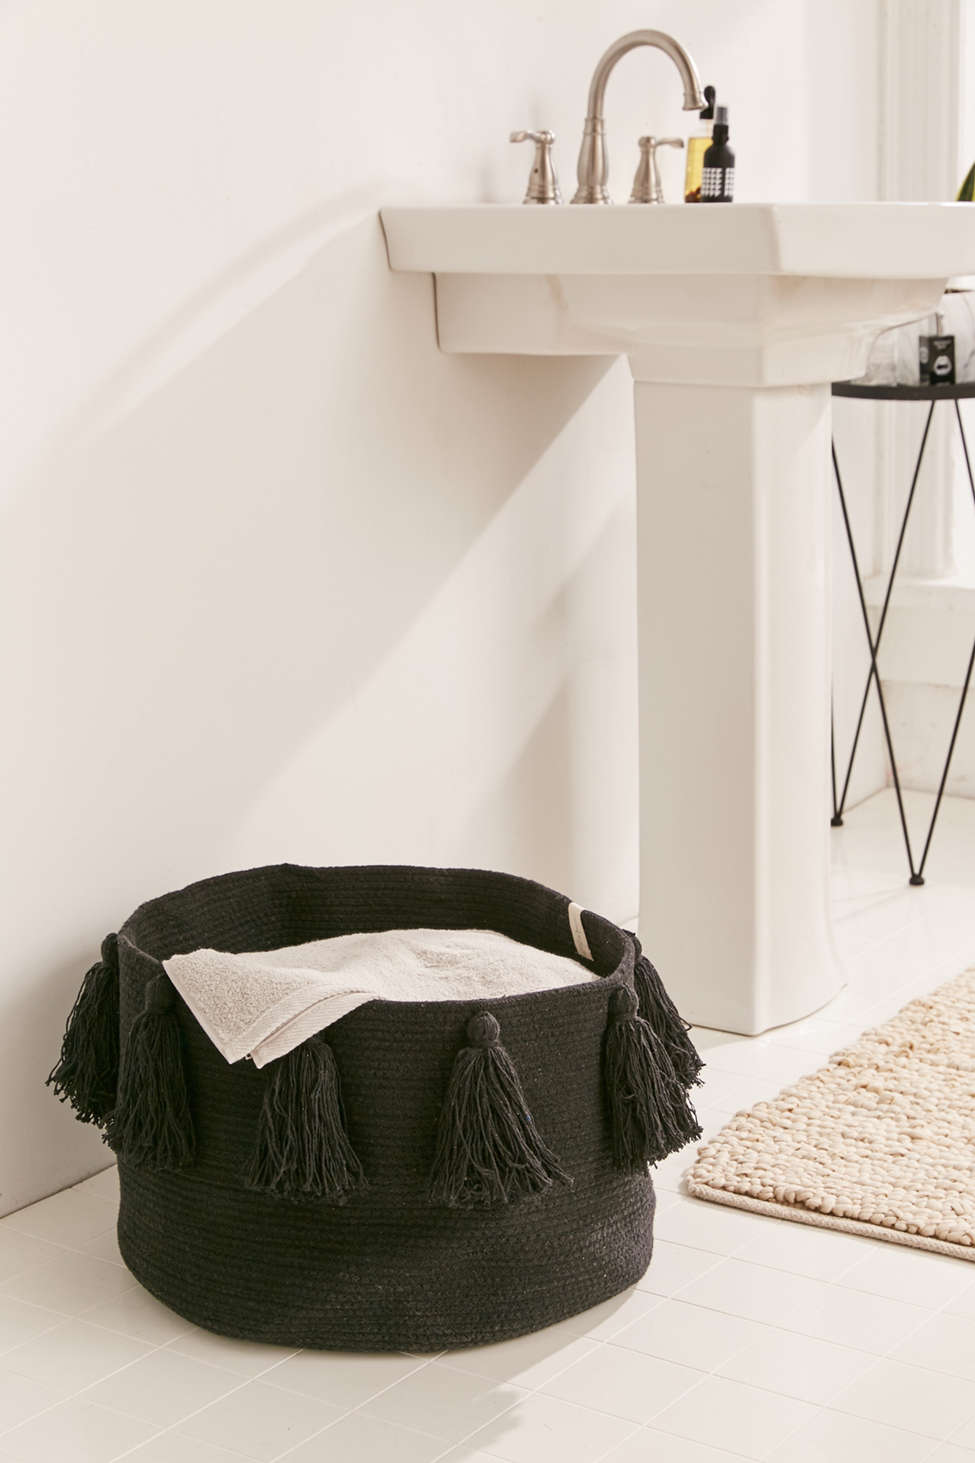 Slide View: 1: Lorena Canals Tassel Laundry Basket